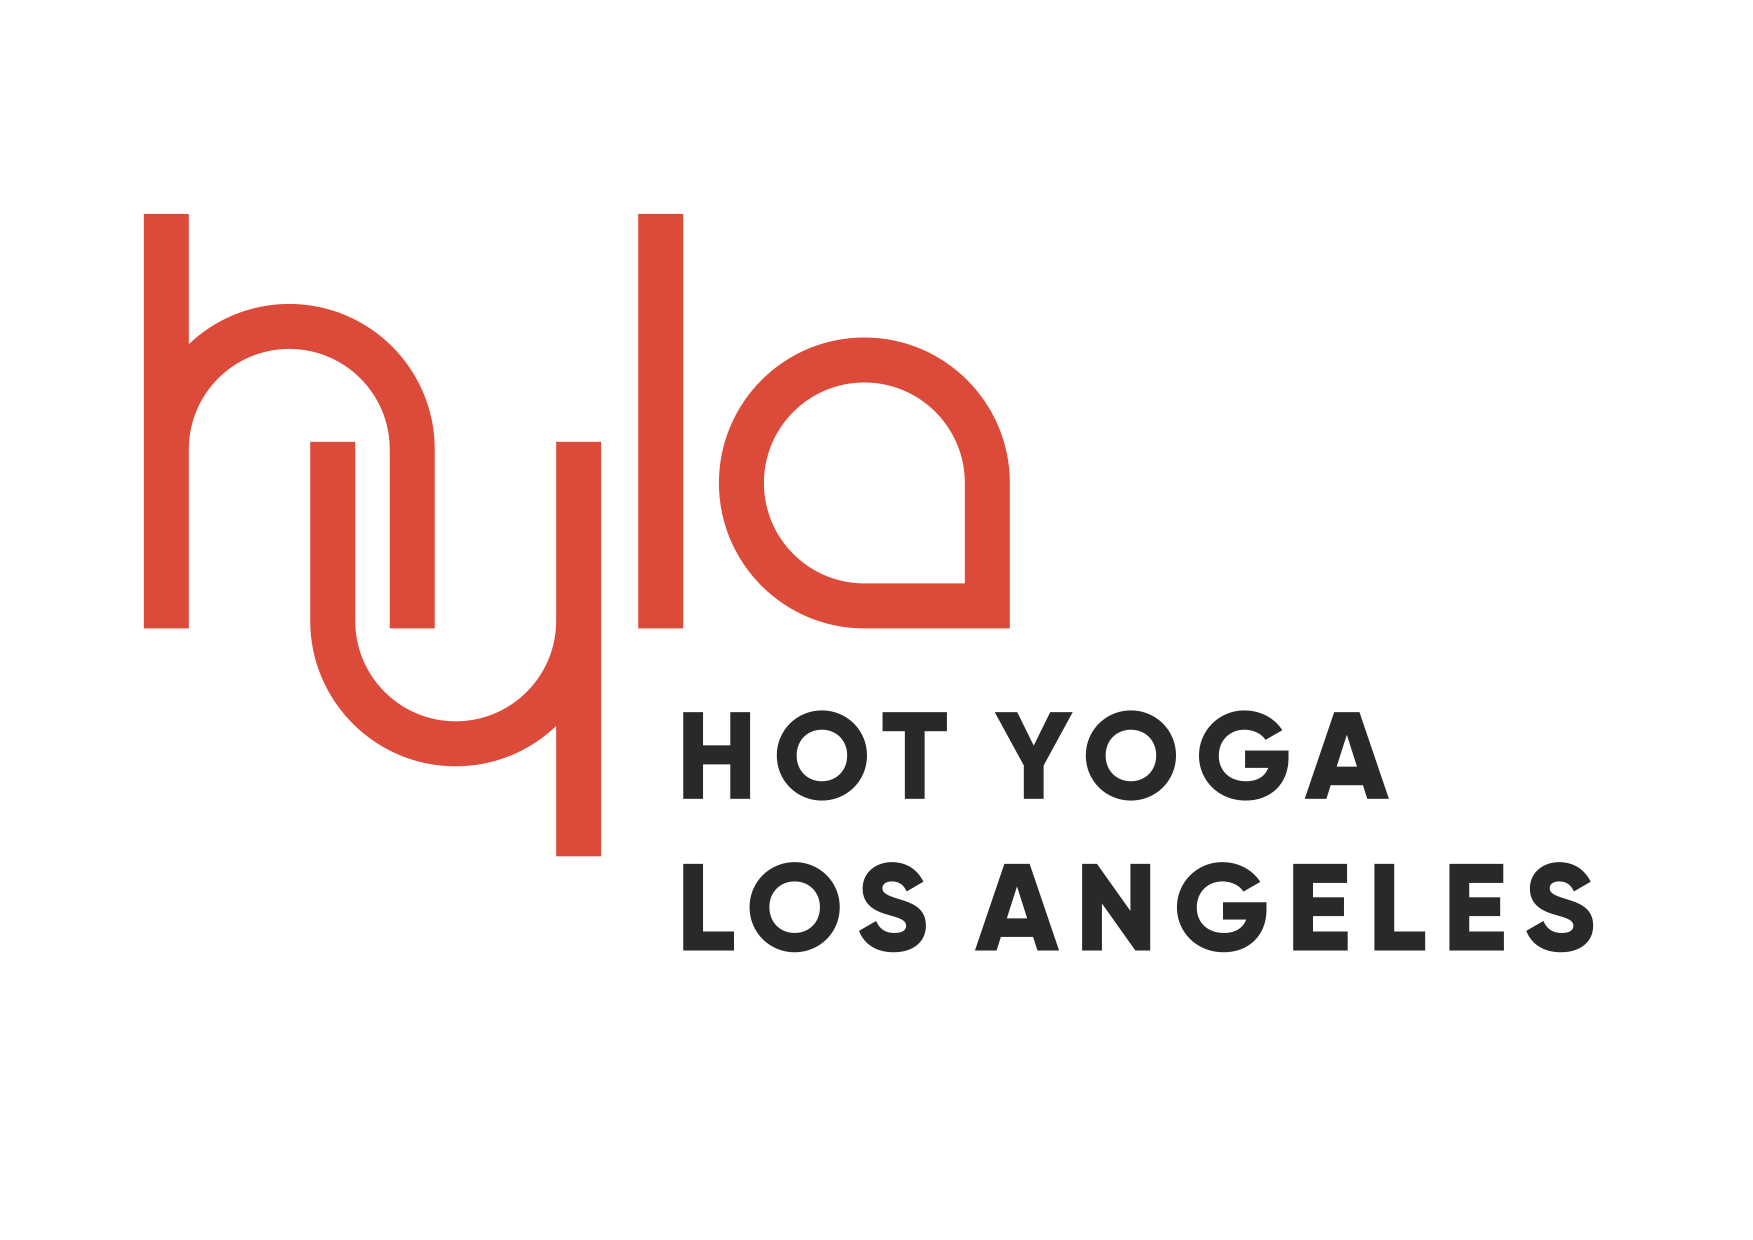 Hot Yoga Los Angeles